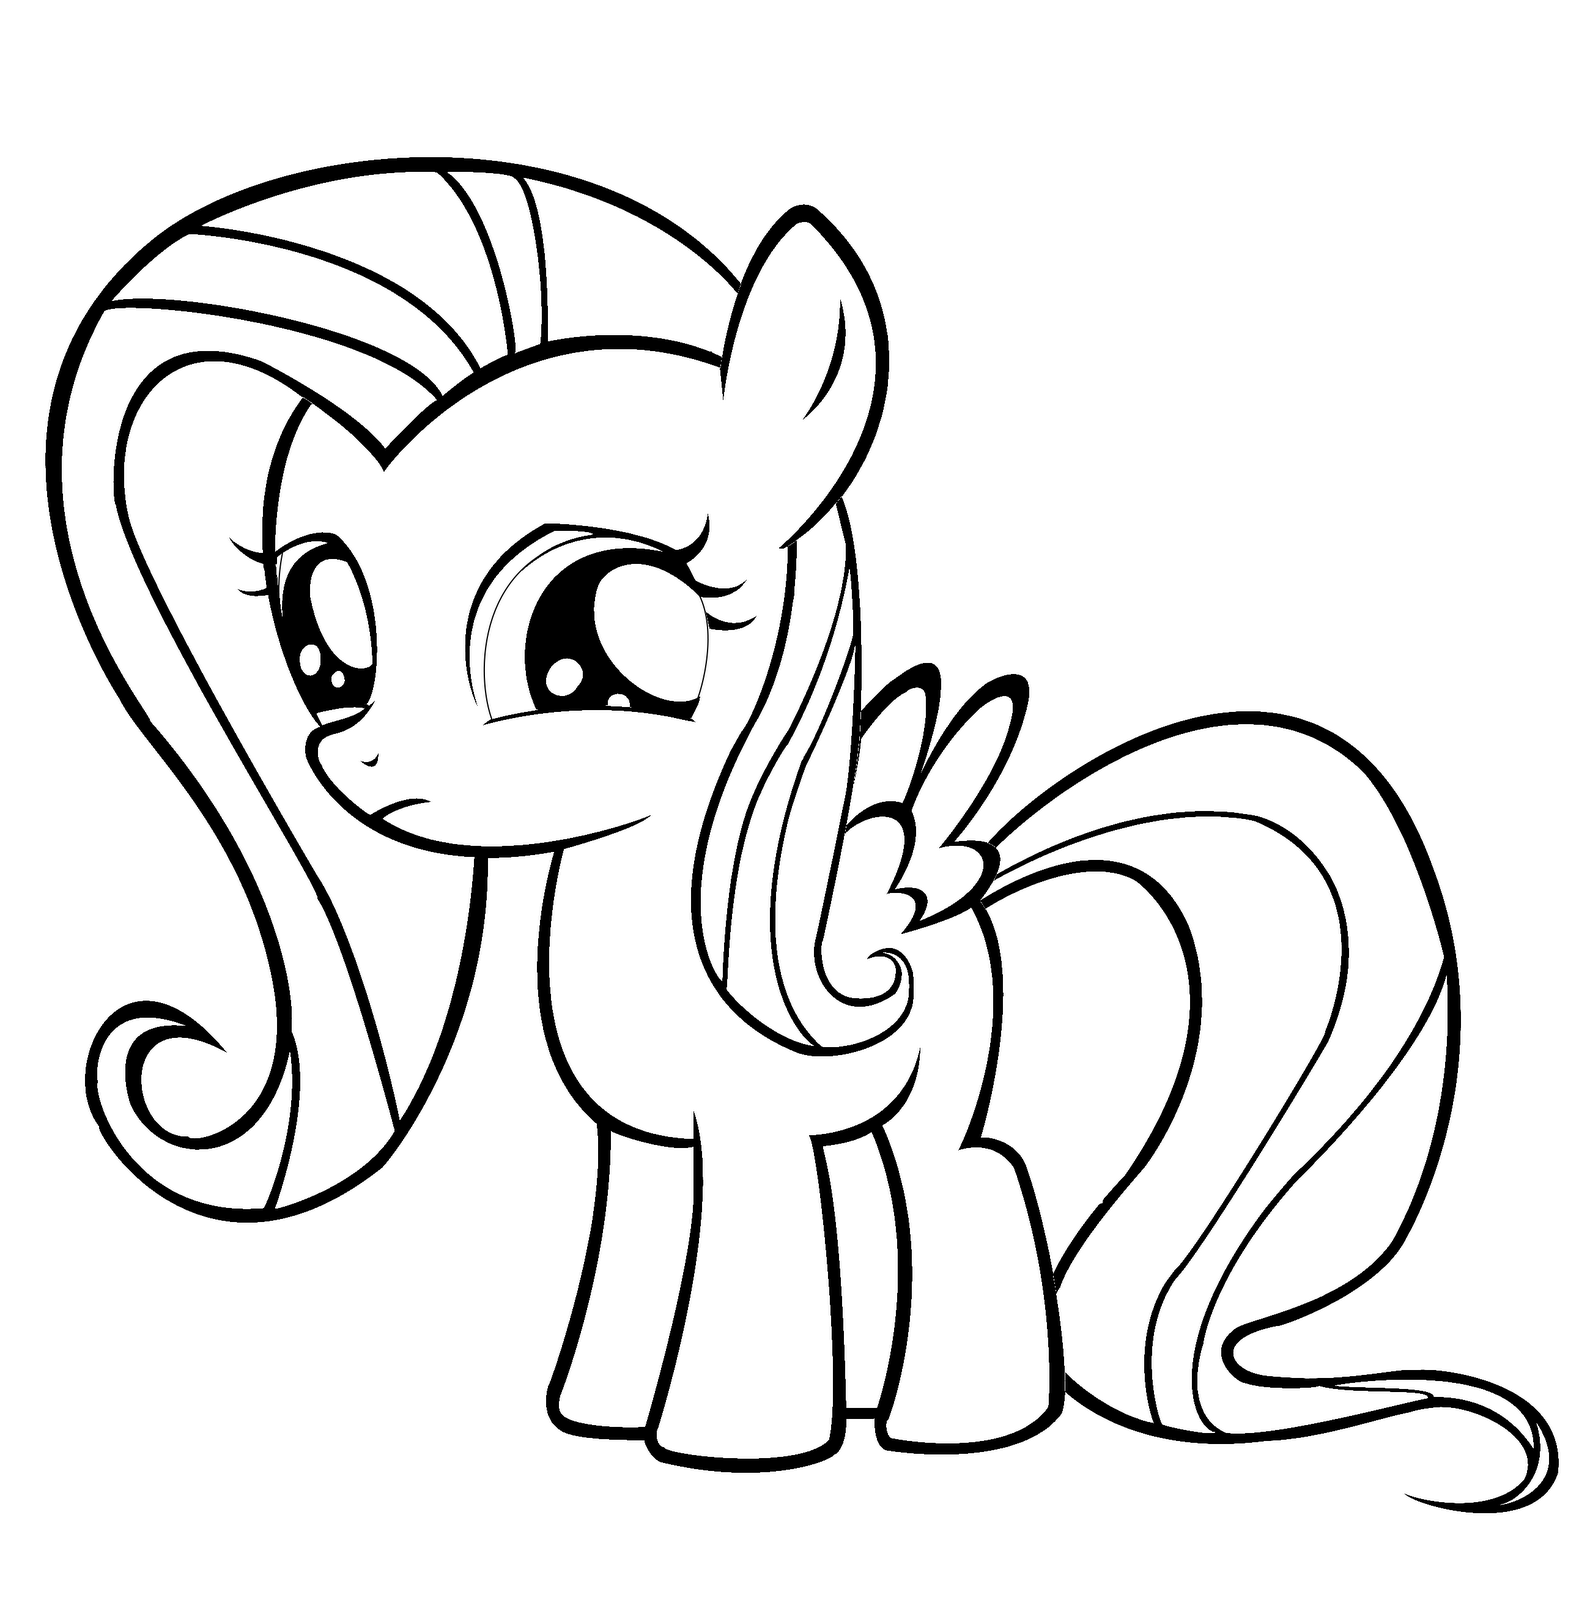 Fluttershy Coloring Pages Best Coloring Pages For Kids Coloring Sheet Of A Printable